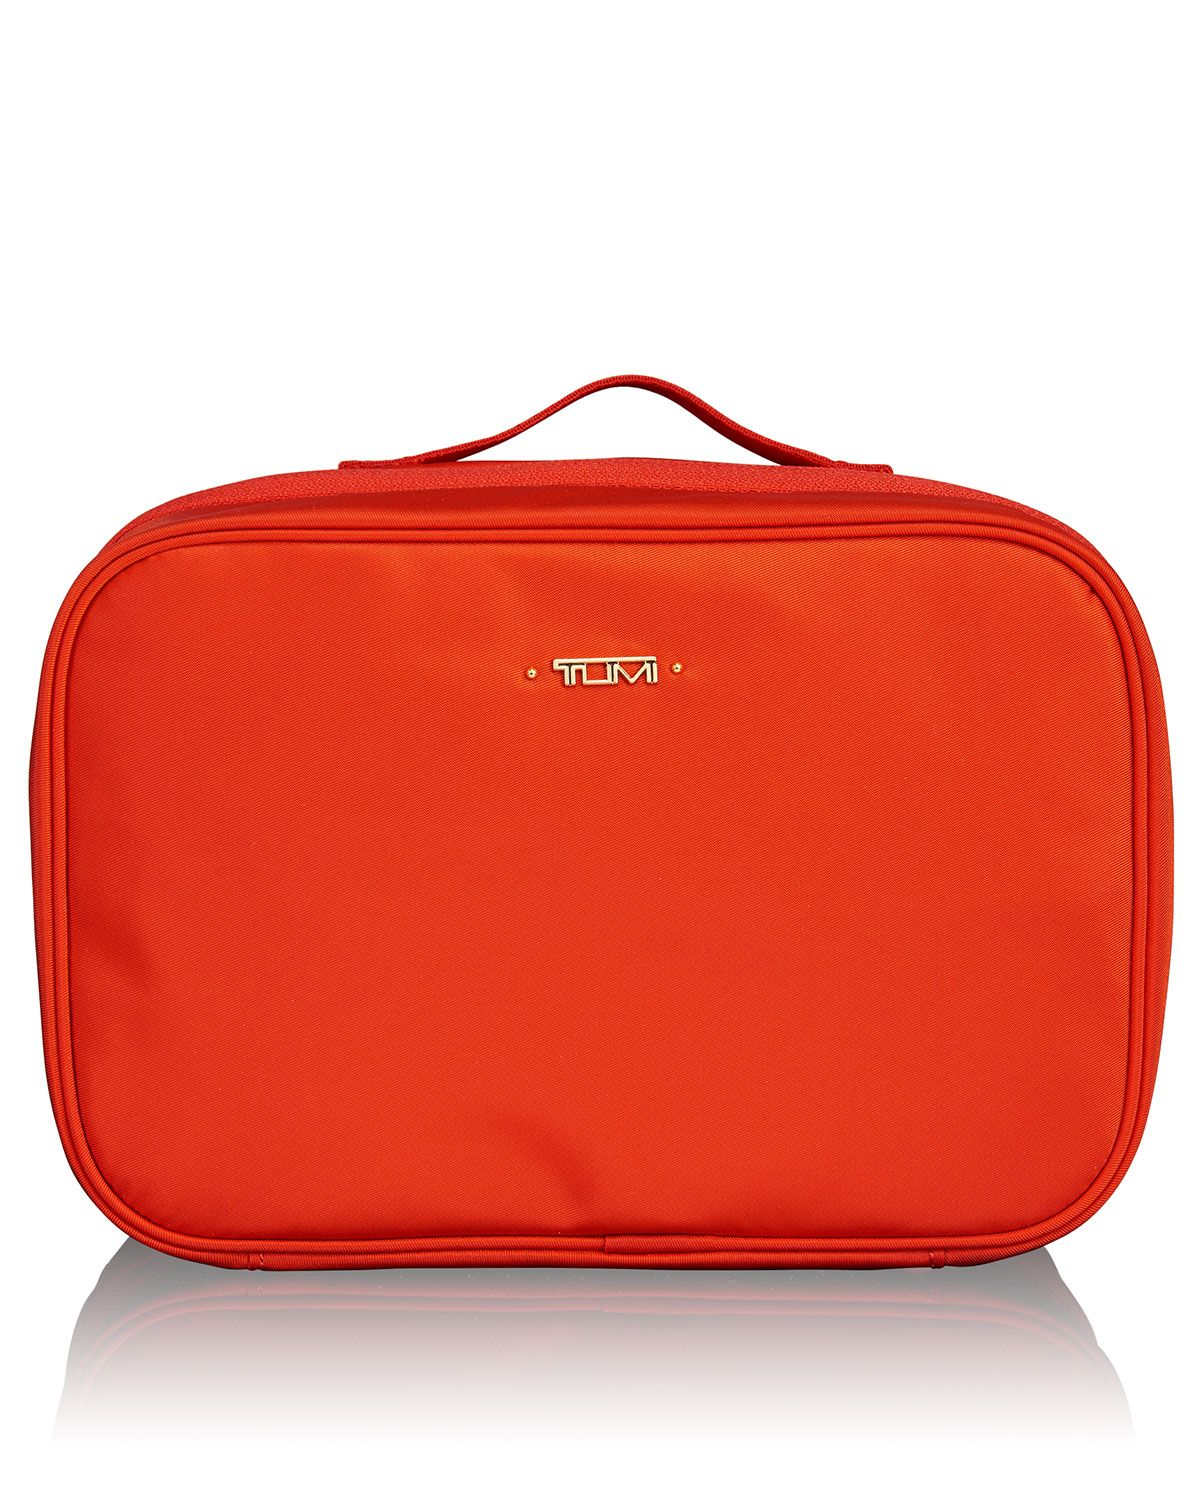 b0ae193d19 Voyageur Cayenne (Red) Lima Toiletry Kit - Tumi